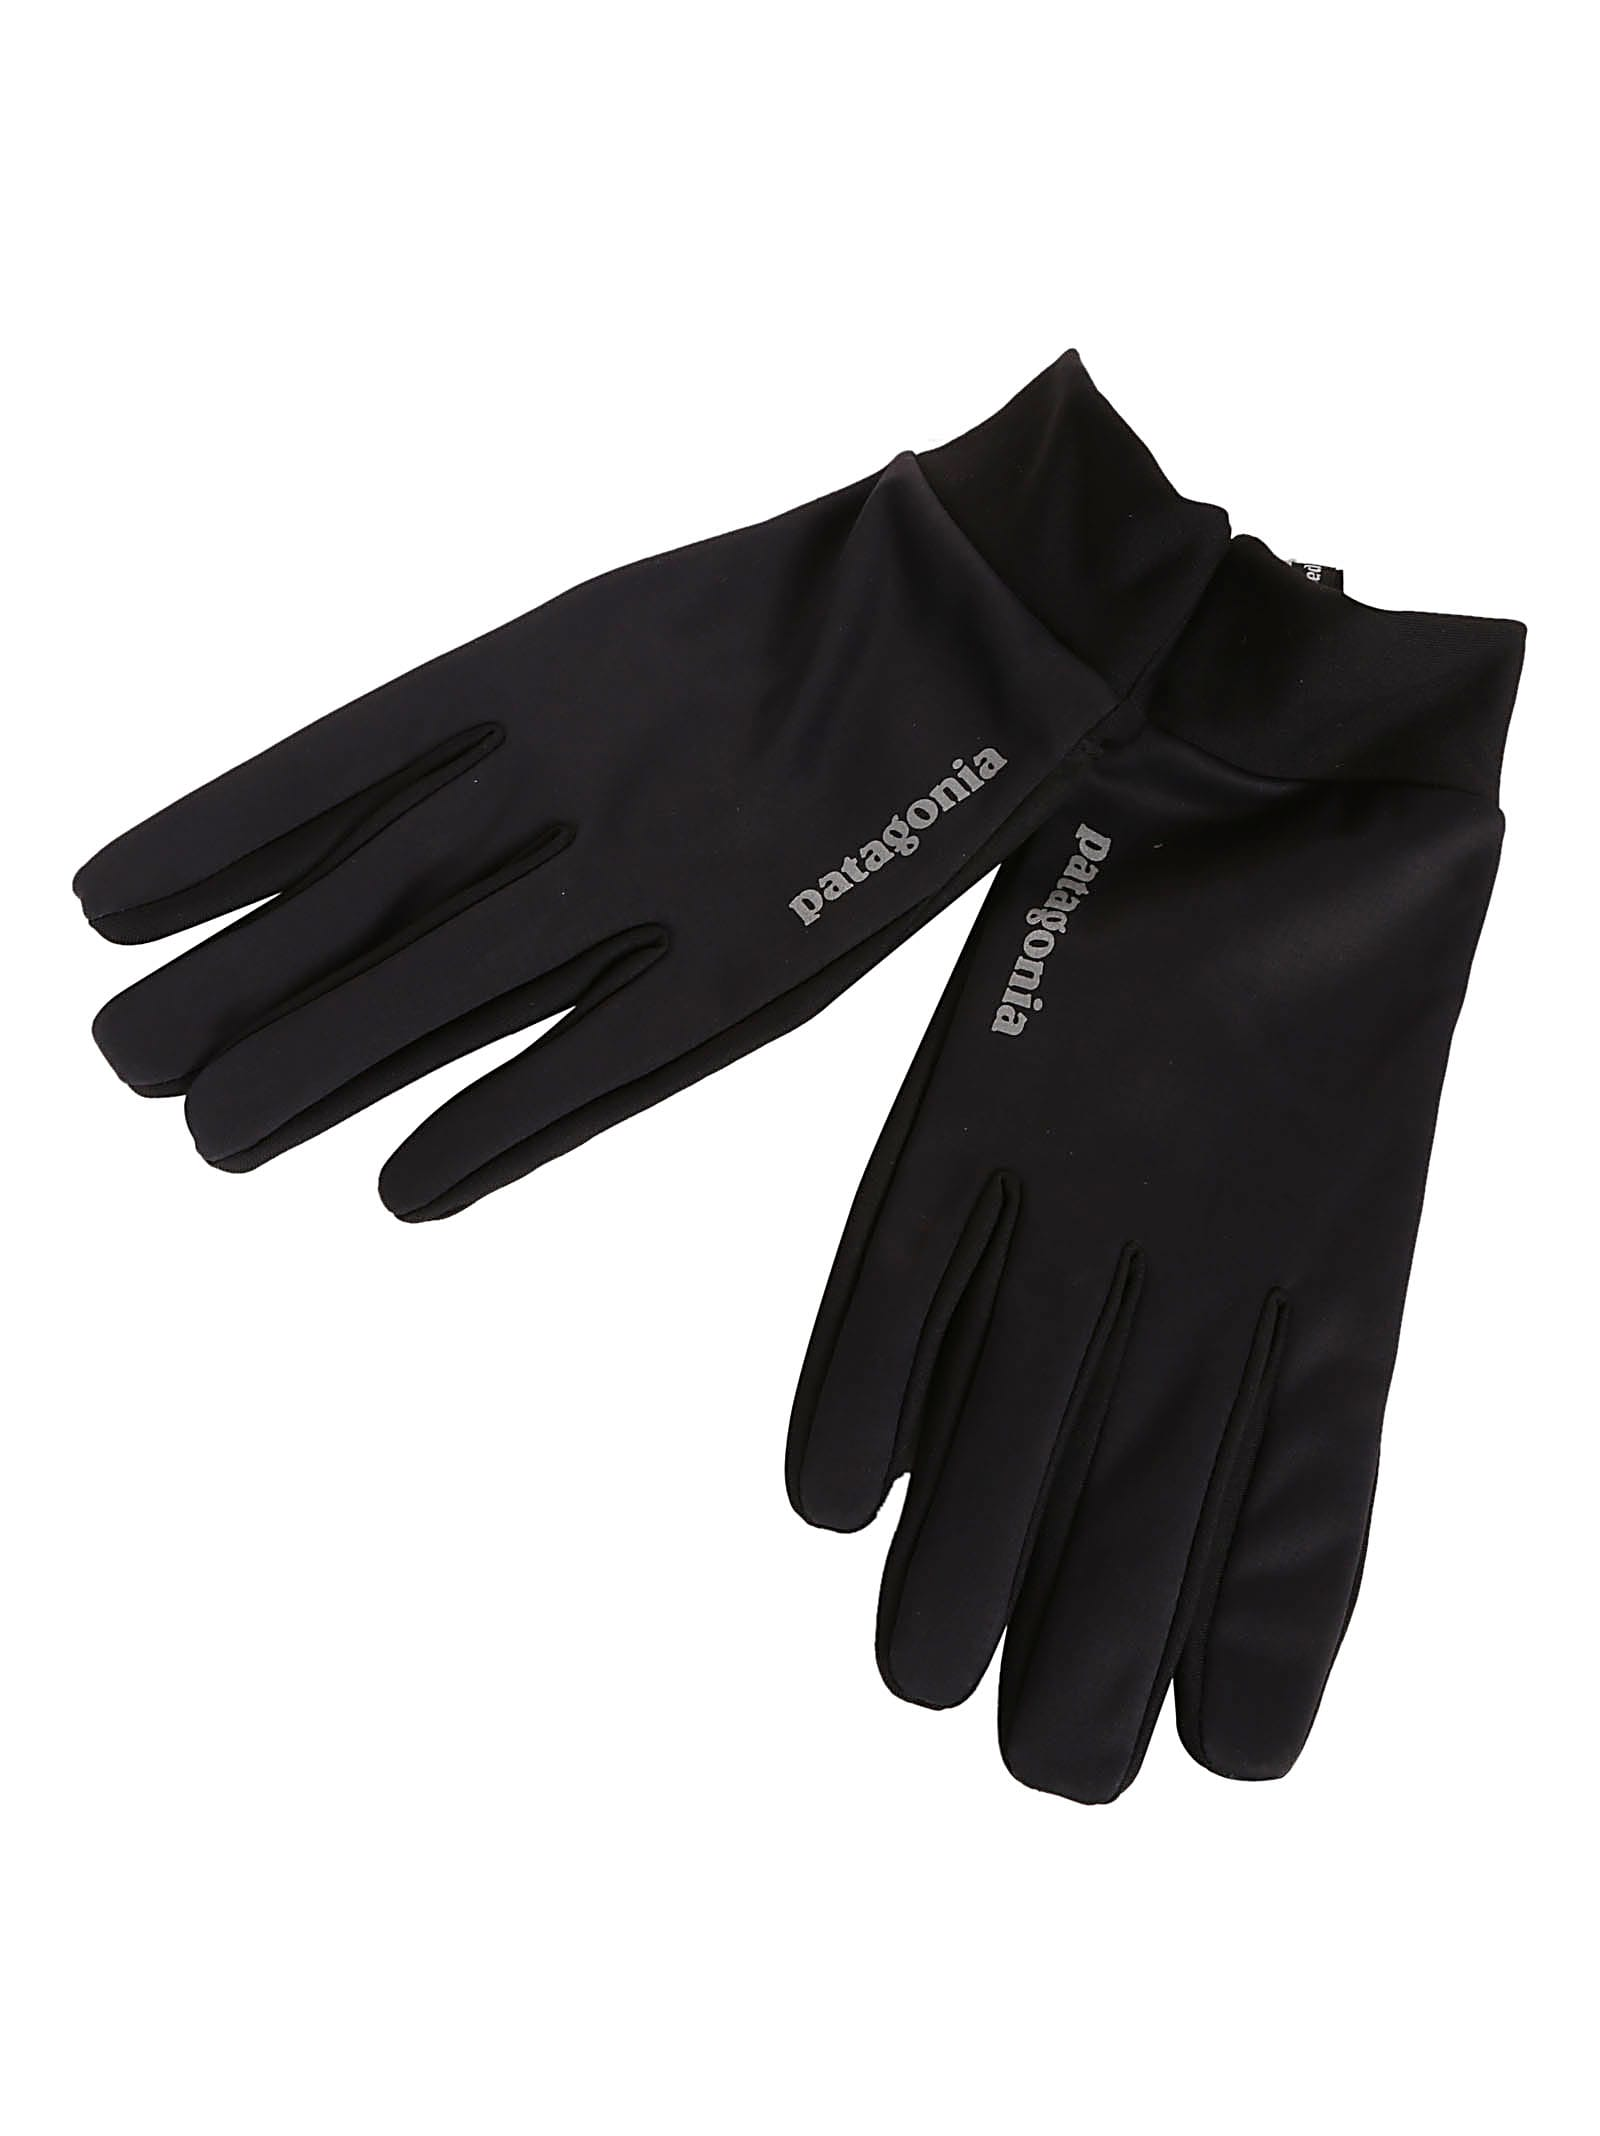 Paneled Logo Gloves from Patagonia: Black Paneled Logo Gloves with ribbed wrist, pull-tab, five finger design and printed logo.